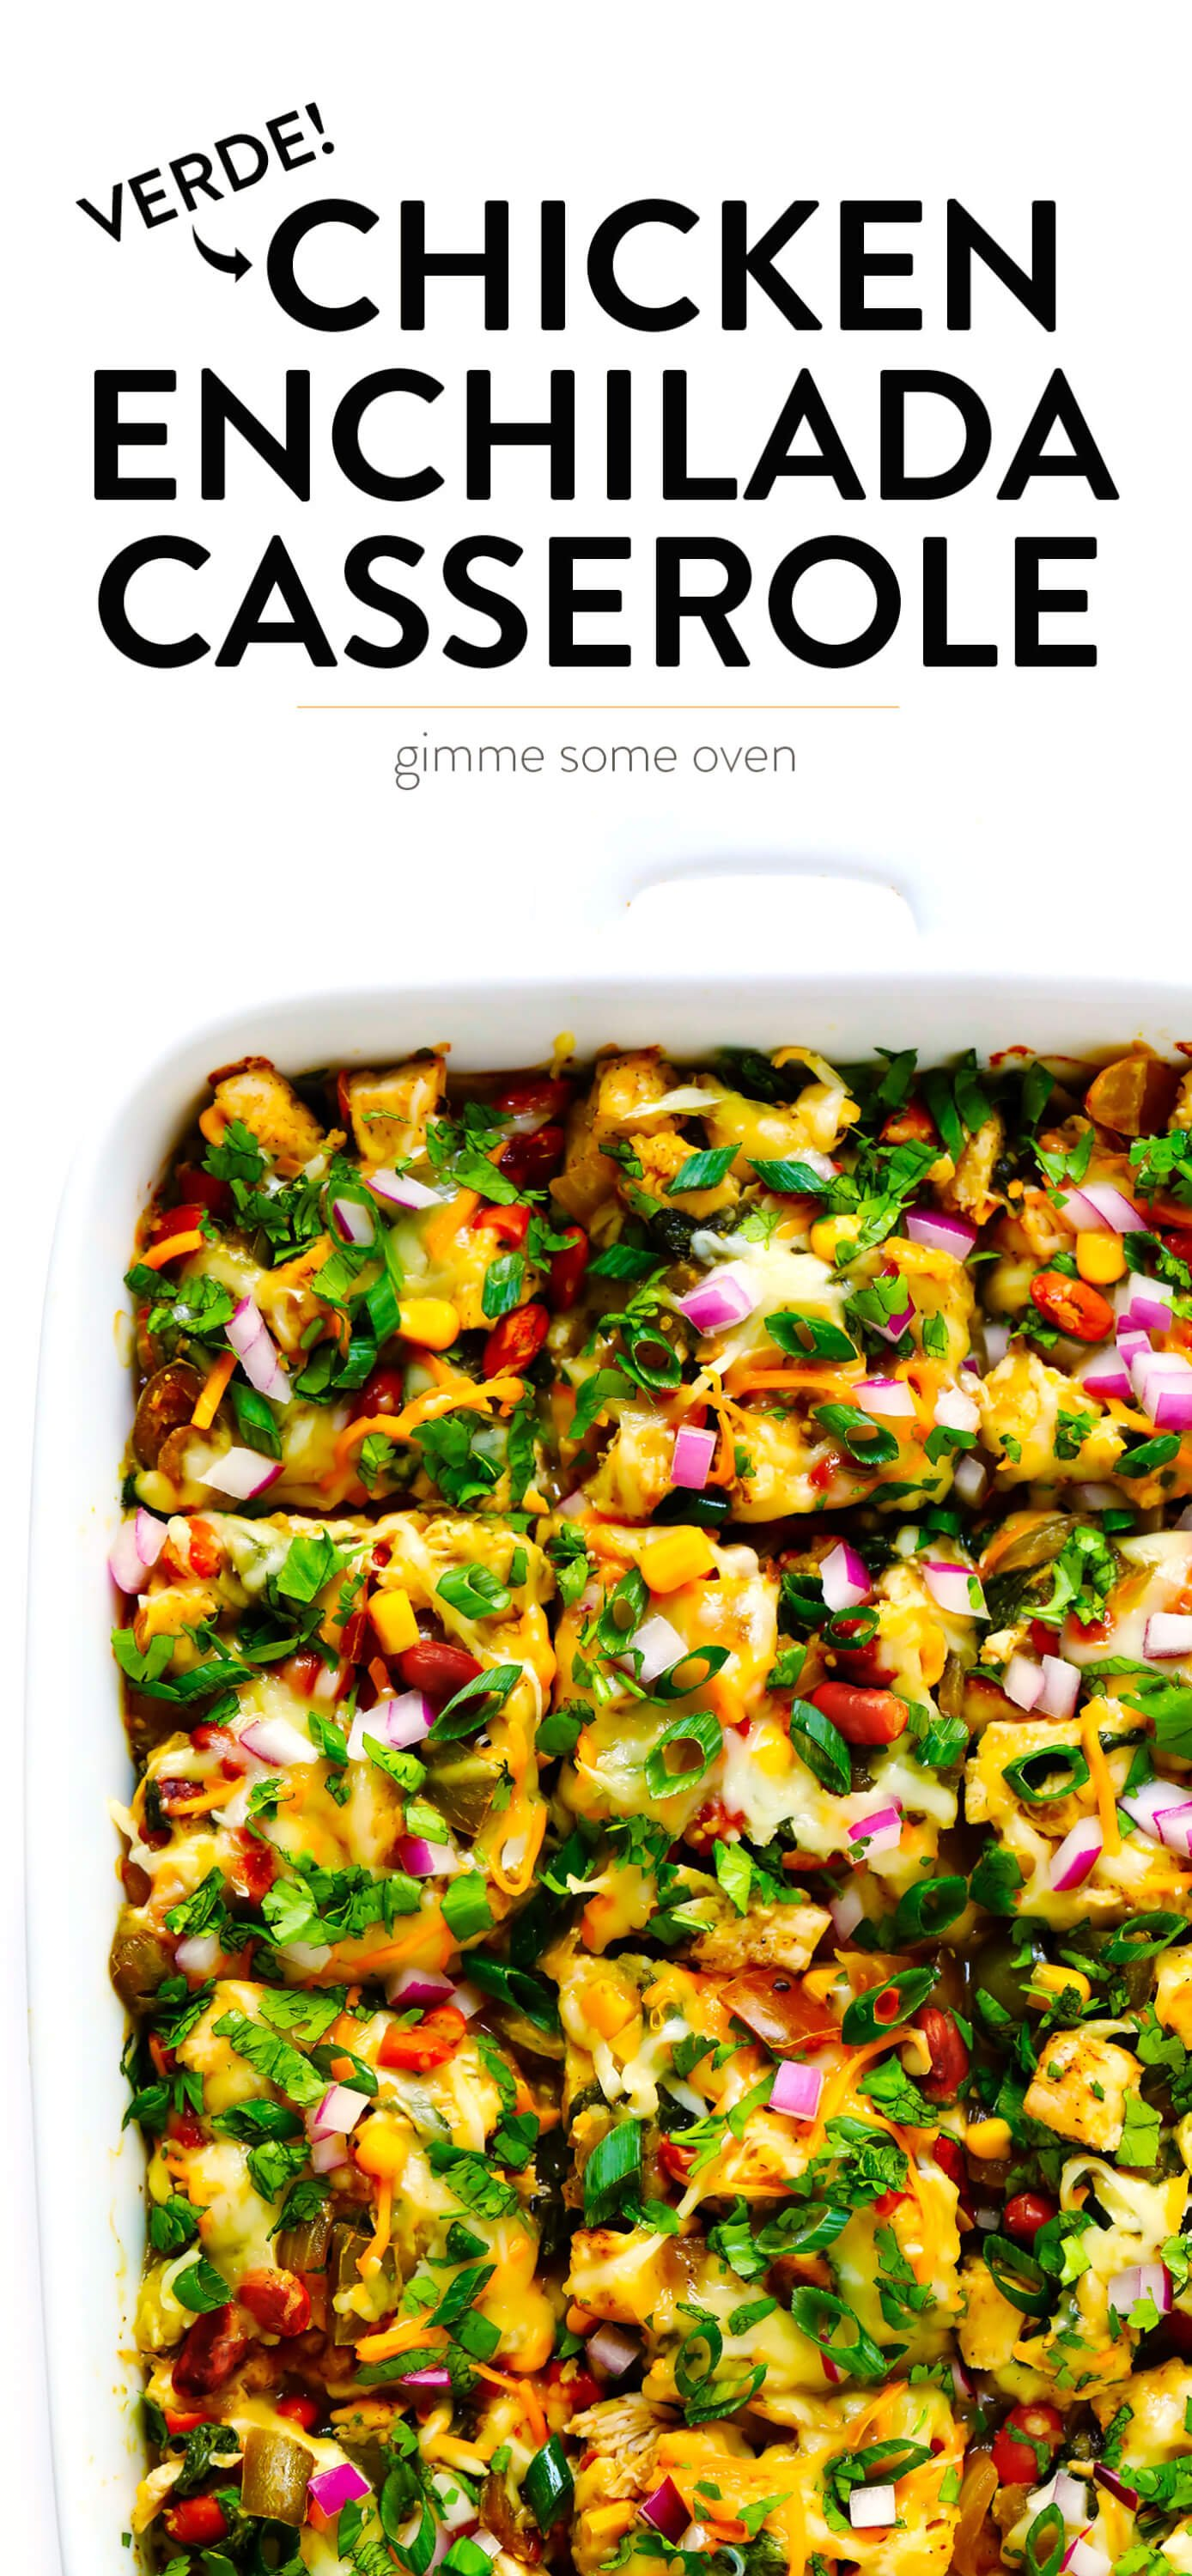 Chicken Enchiladas Verdes Casserole from Gimme Some Oven